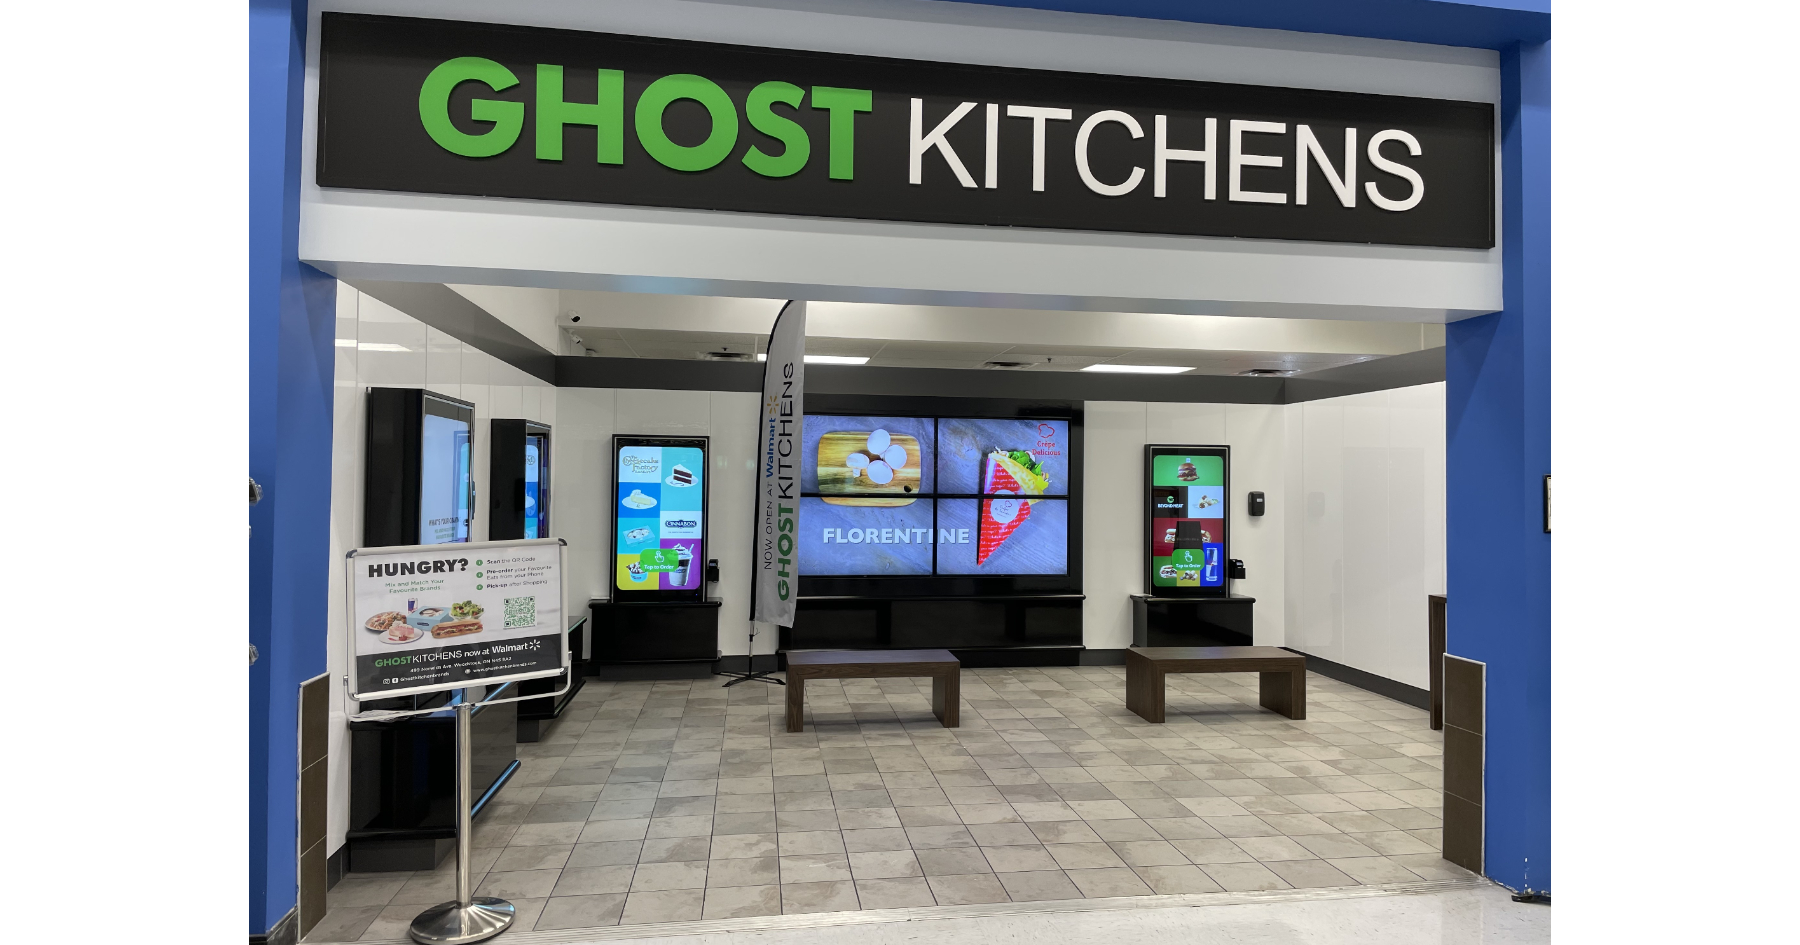 Some ghost kitchens shed shadowy image